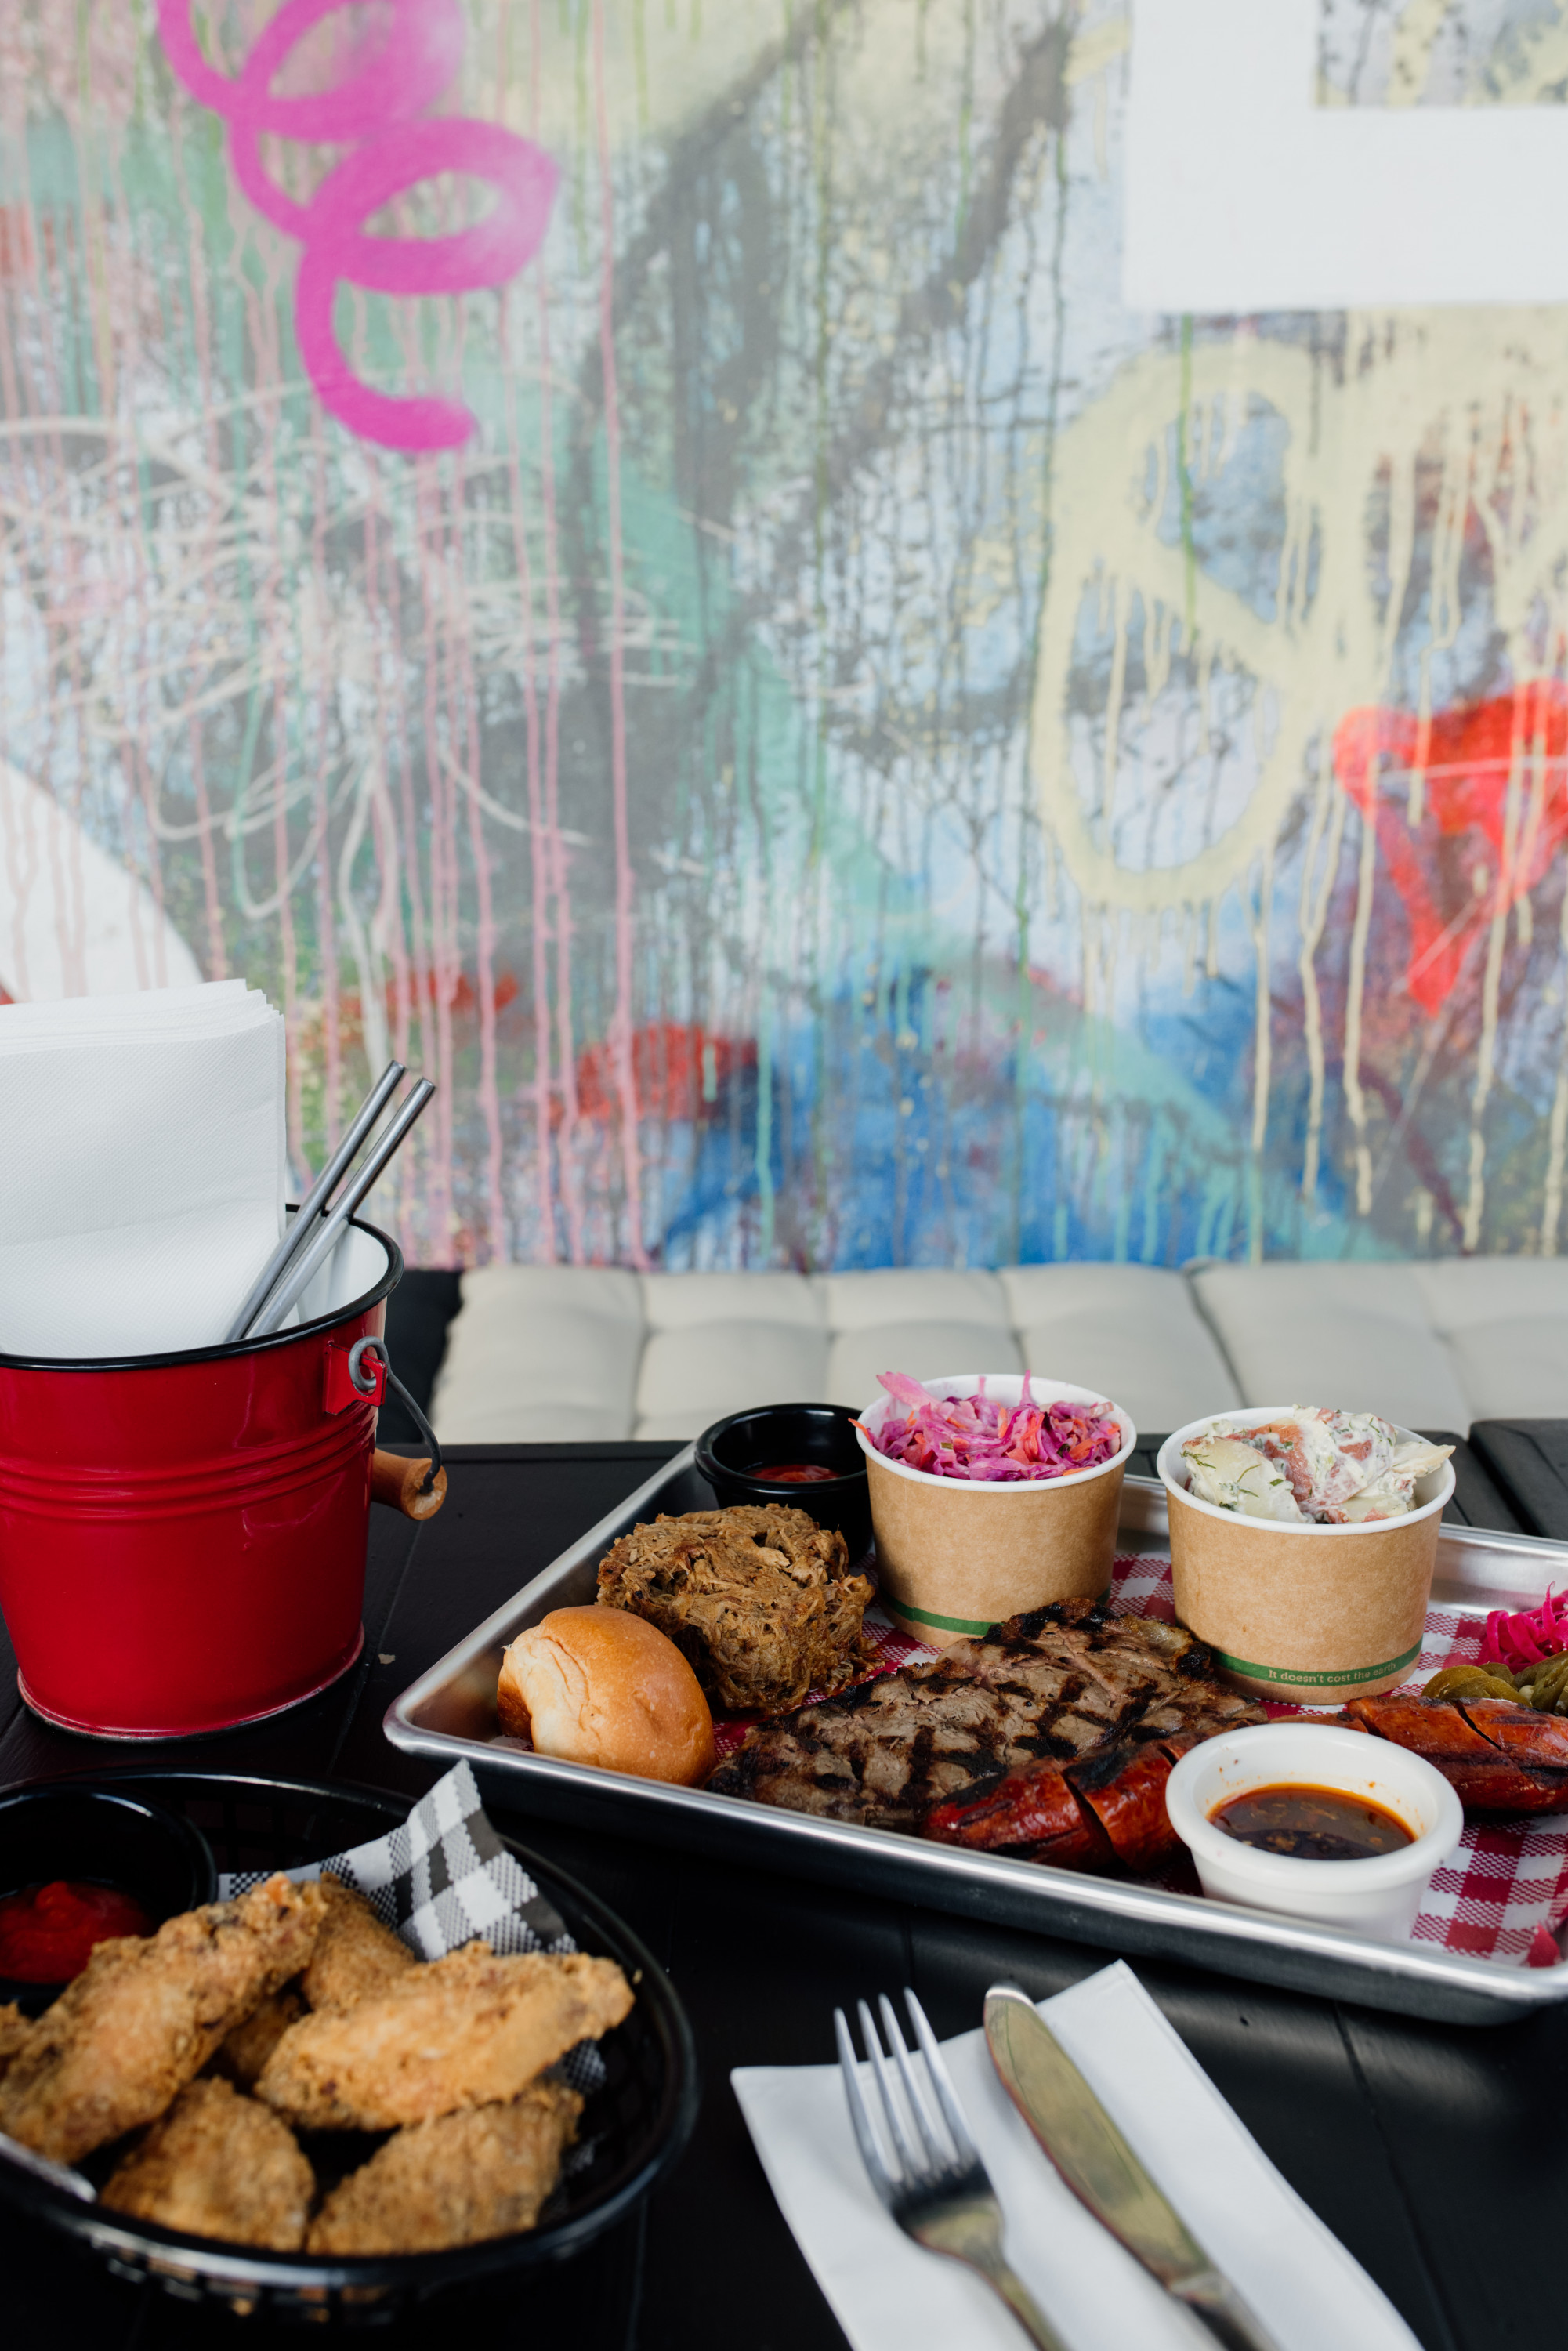 a bbq platter with graffiti in the background